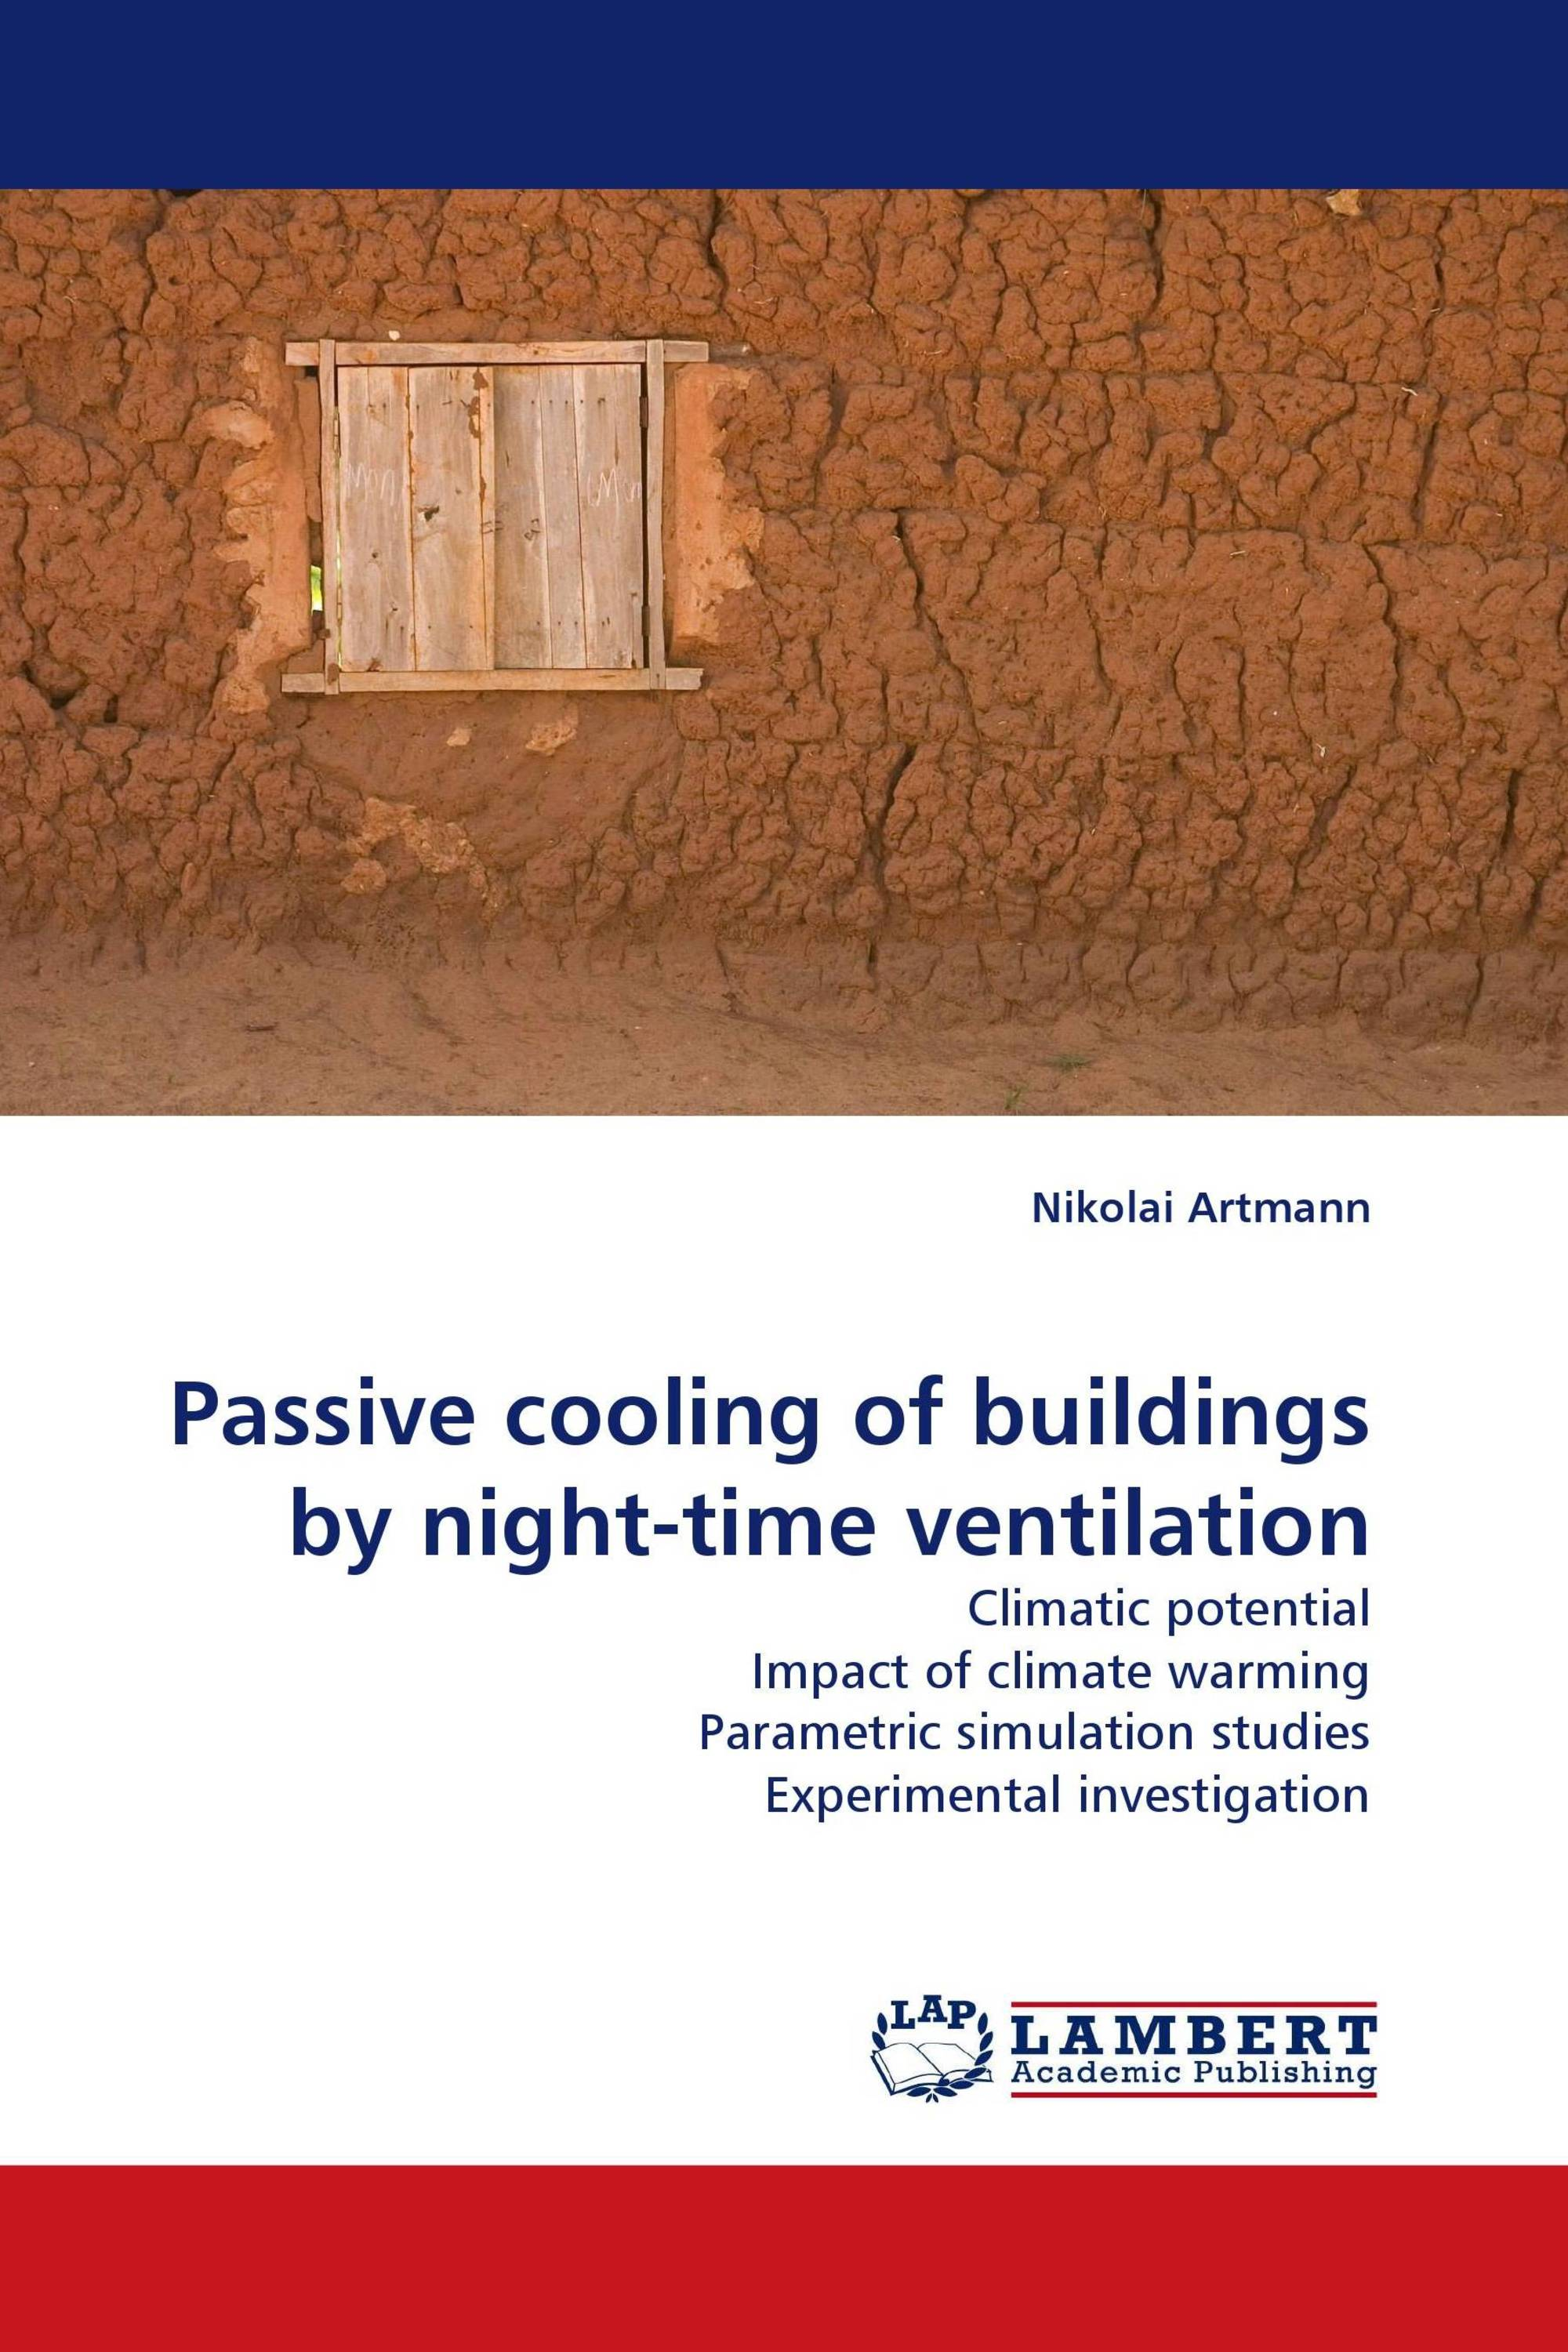 Passive cooling of buildings by night-time ventilation